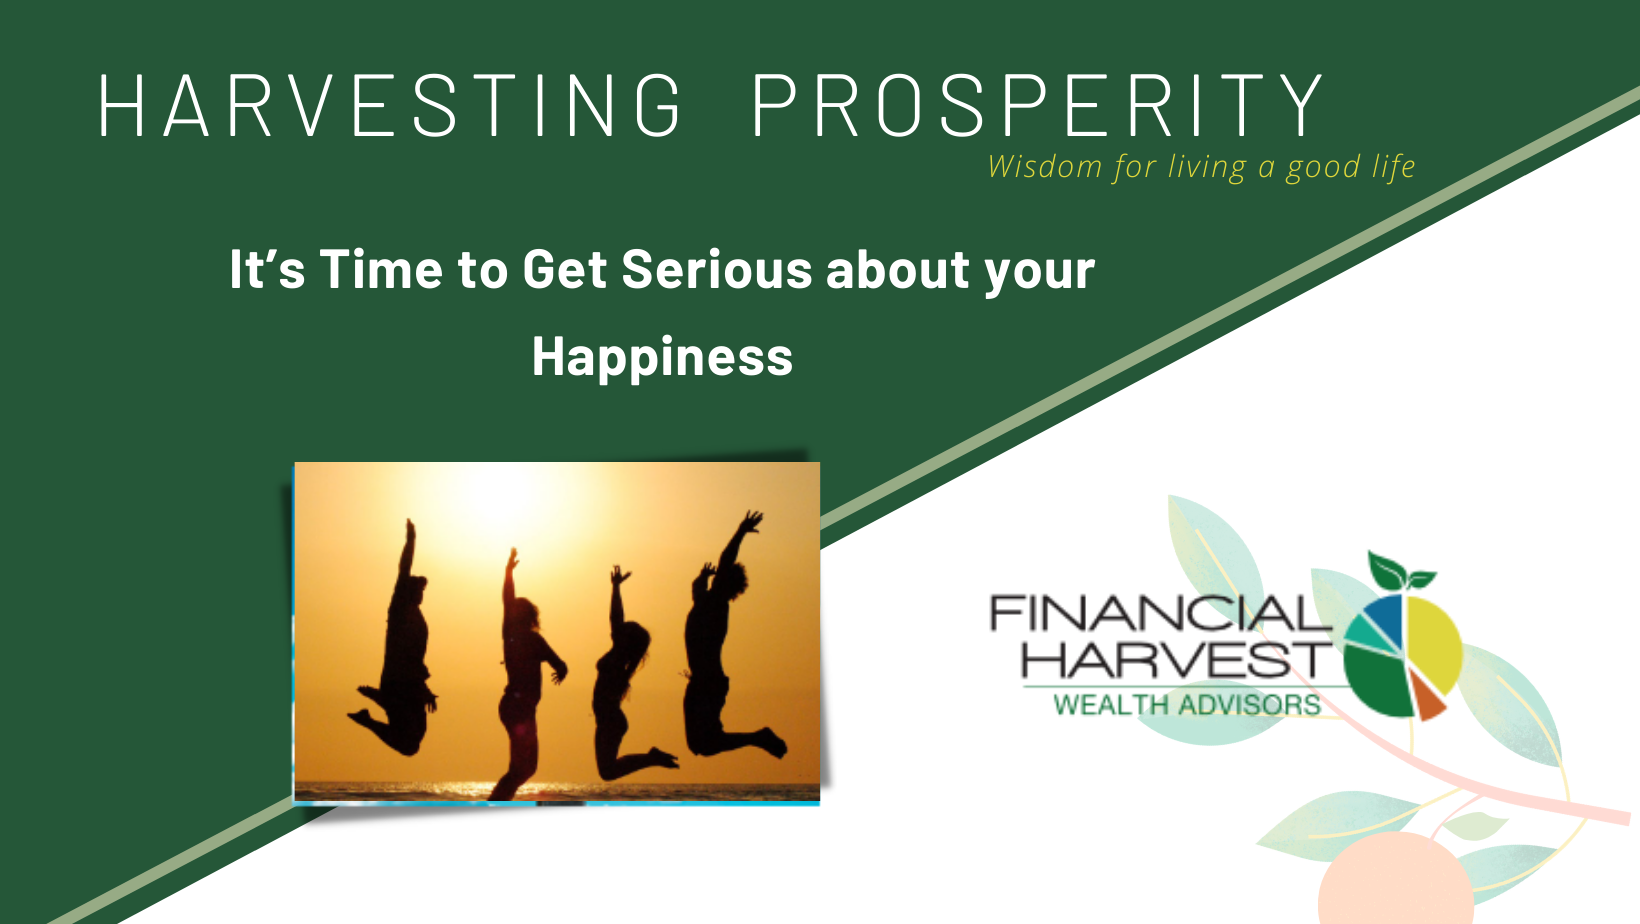 It's time to get serious about your happiness